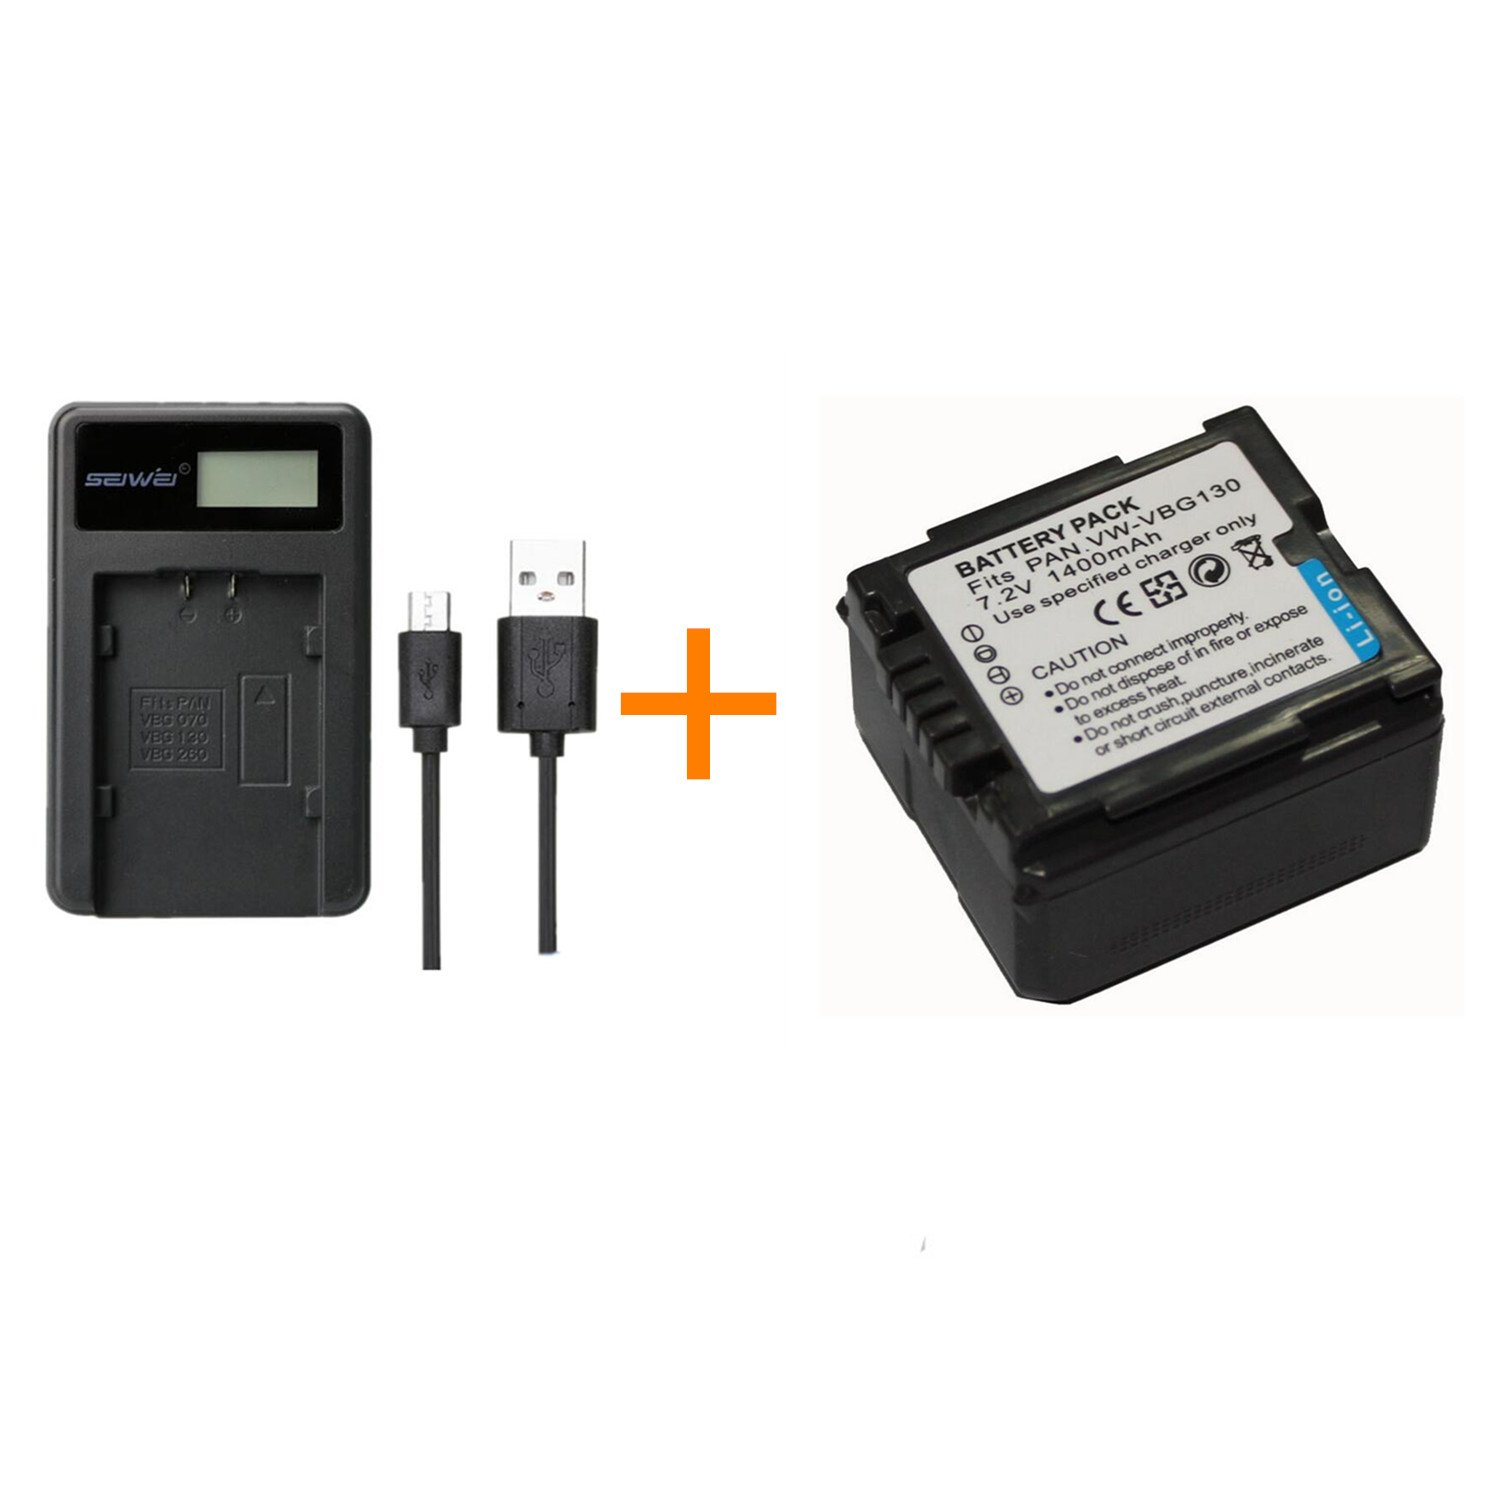 2 Pc 1400mAh VW-VBG130 VWVBG130 VW VBG130 Rechargeable Battery with Battery Charger for Panasonic SDR-H80 HDC-DX5 HDC-TM20 (2 pcs Battery with Charger) FUGASUN CBAVW-VBG130